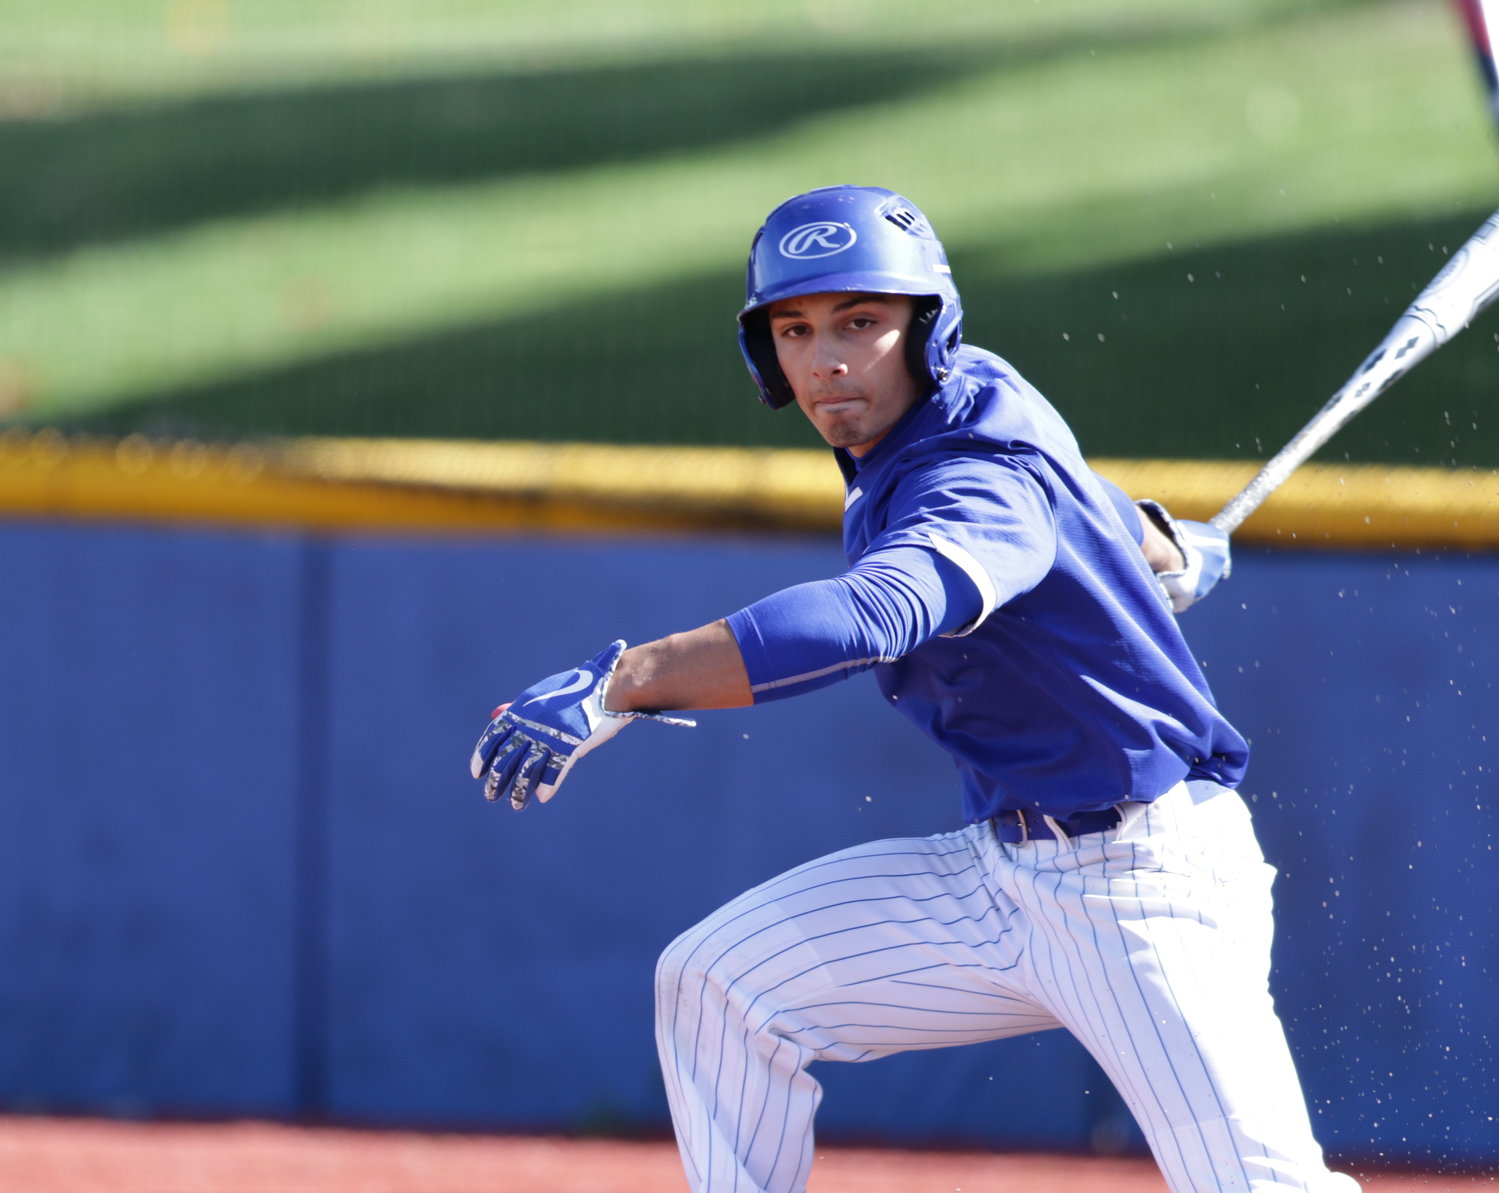 EJ Cumbo was at NYIT baseball's fall game against LIU Post at Angelo Lorenzo Memorial Field on Oct. 19.